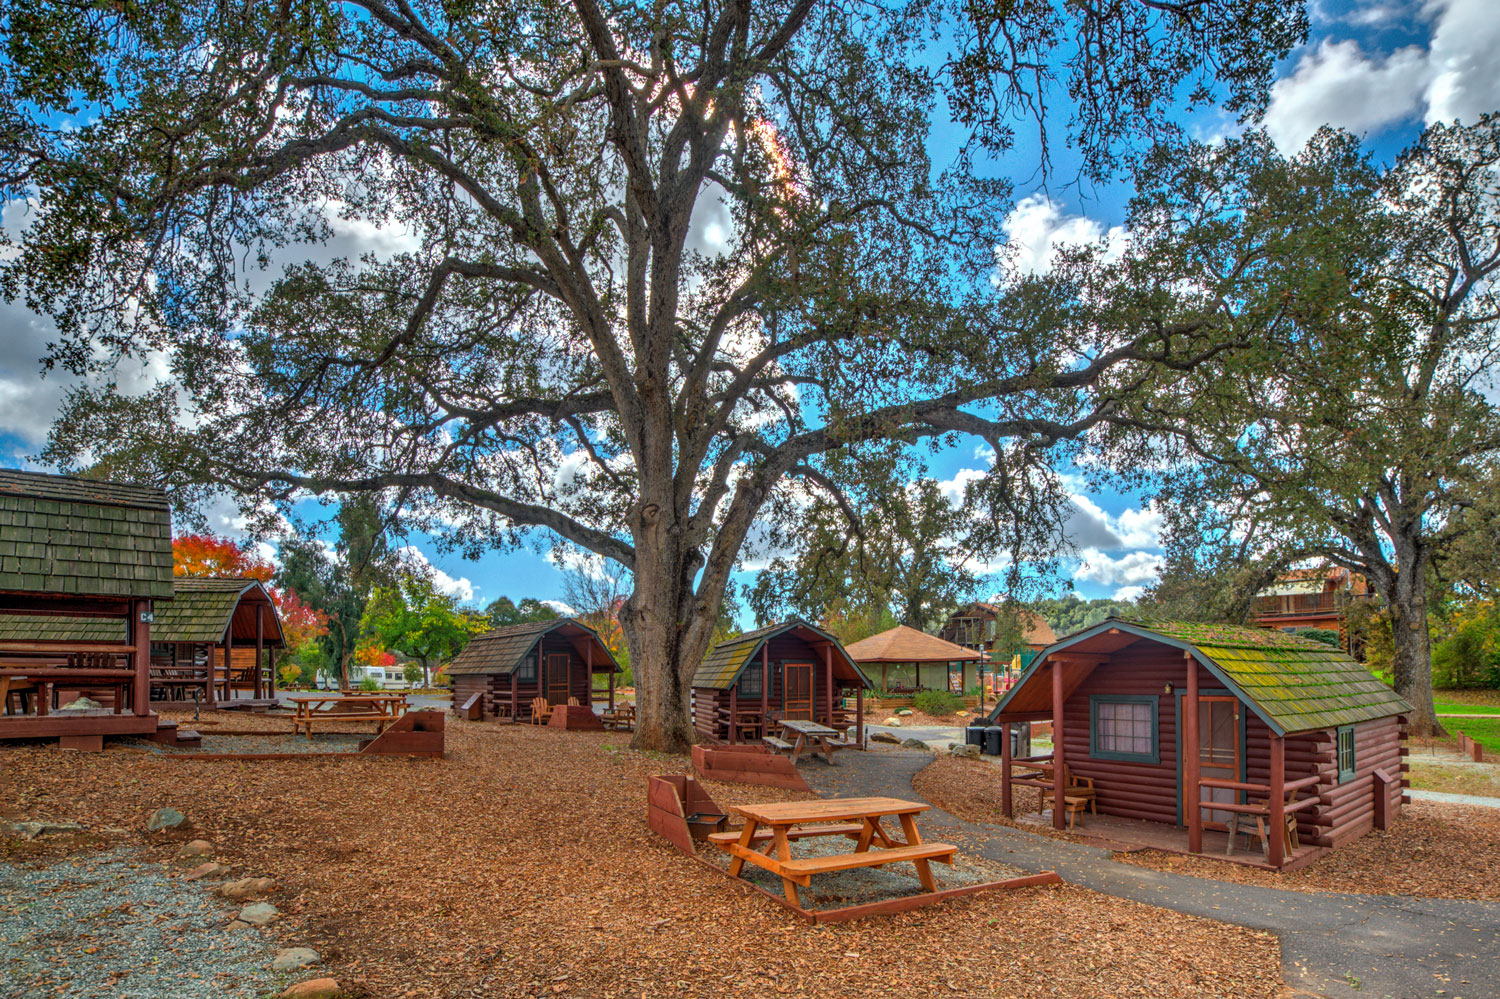 angels camps rv resort